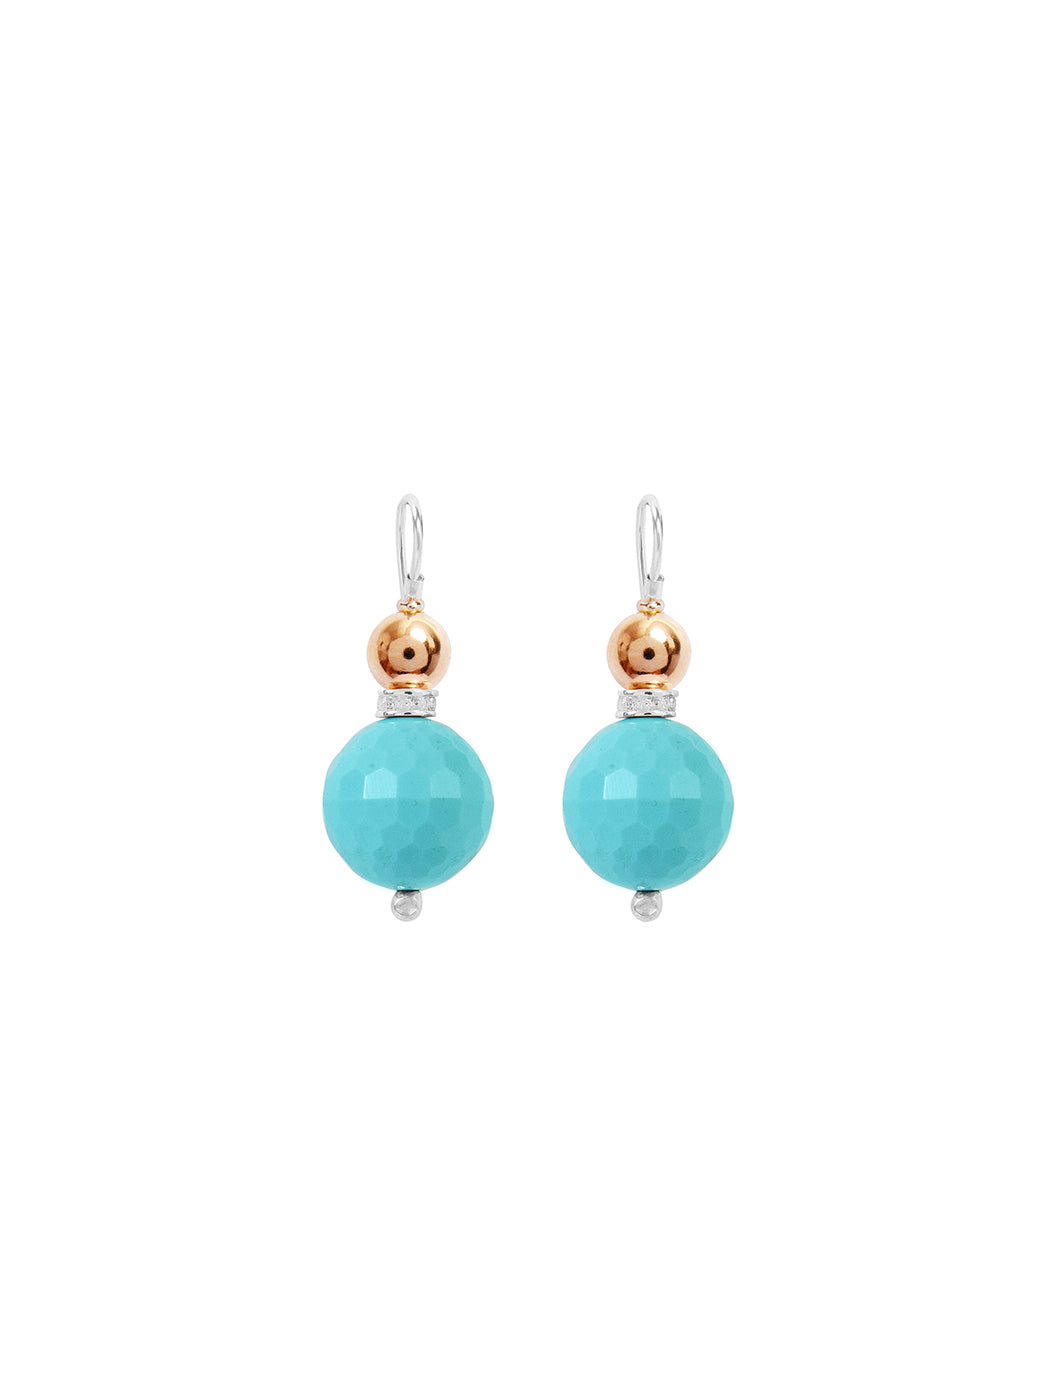 Fiorina Jewellery Double Ball Earrings Turquoise